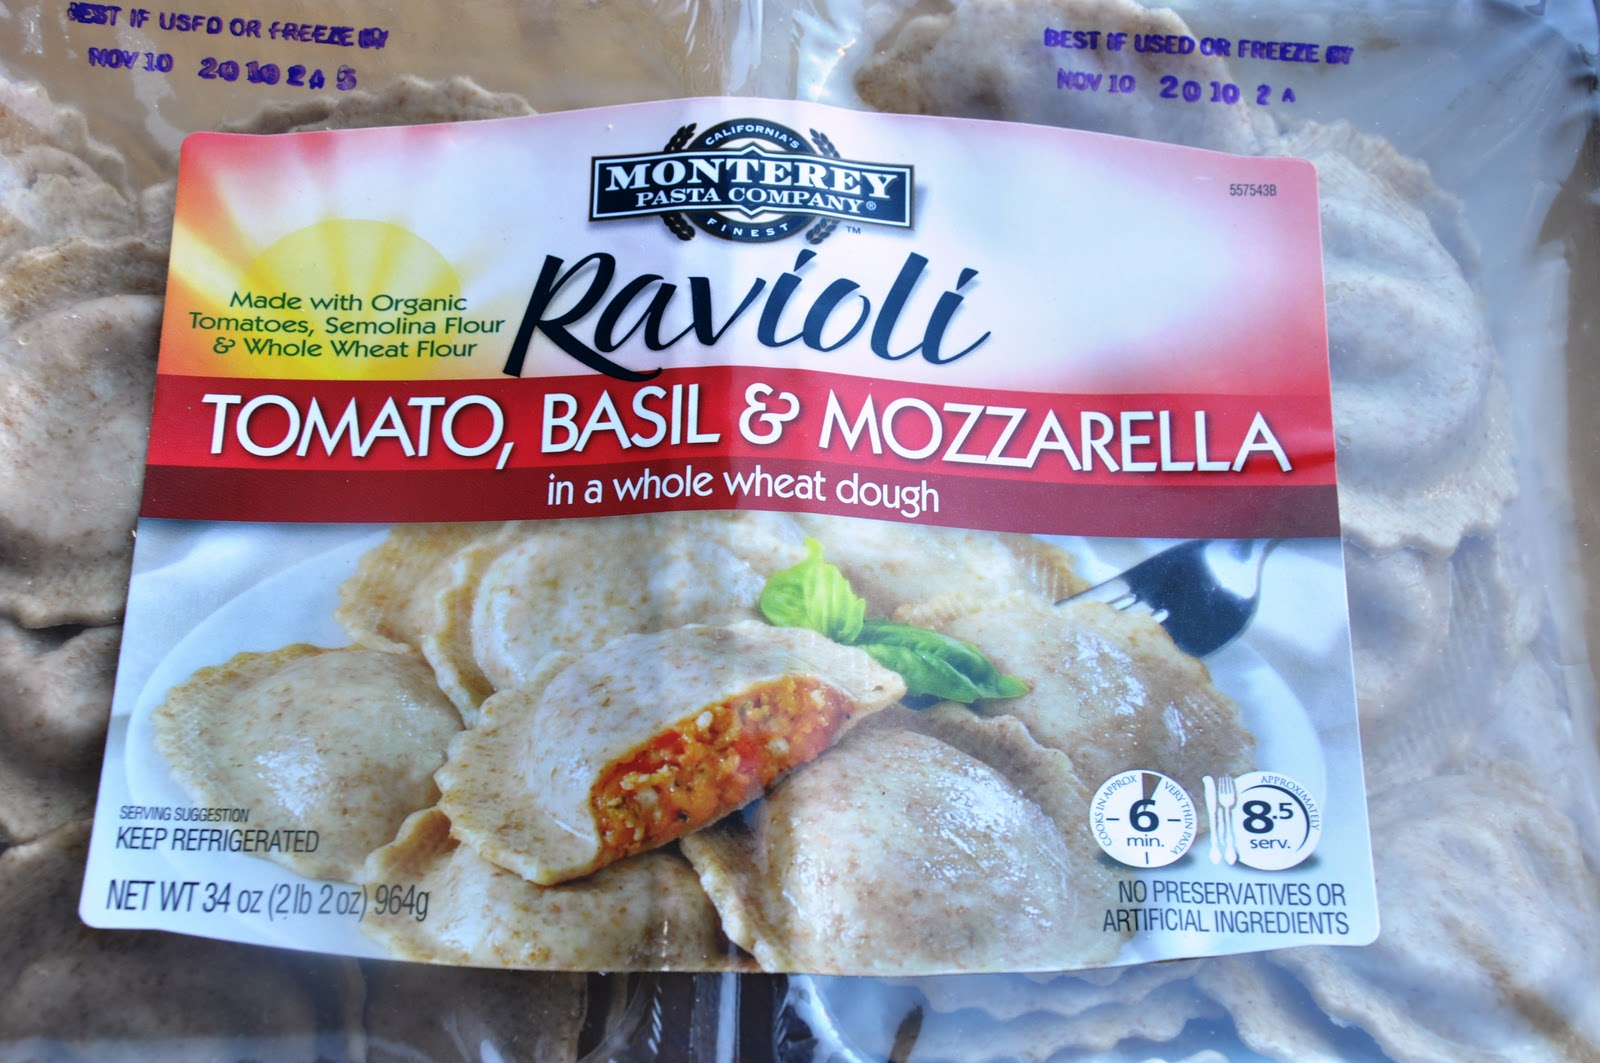 Product Review: Monterey Pasta Company's - Tomato, Basil